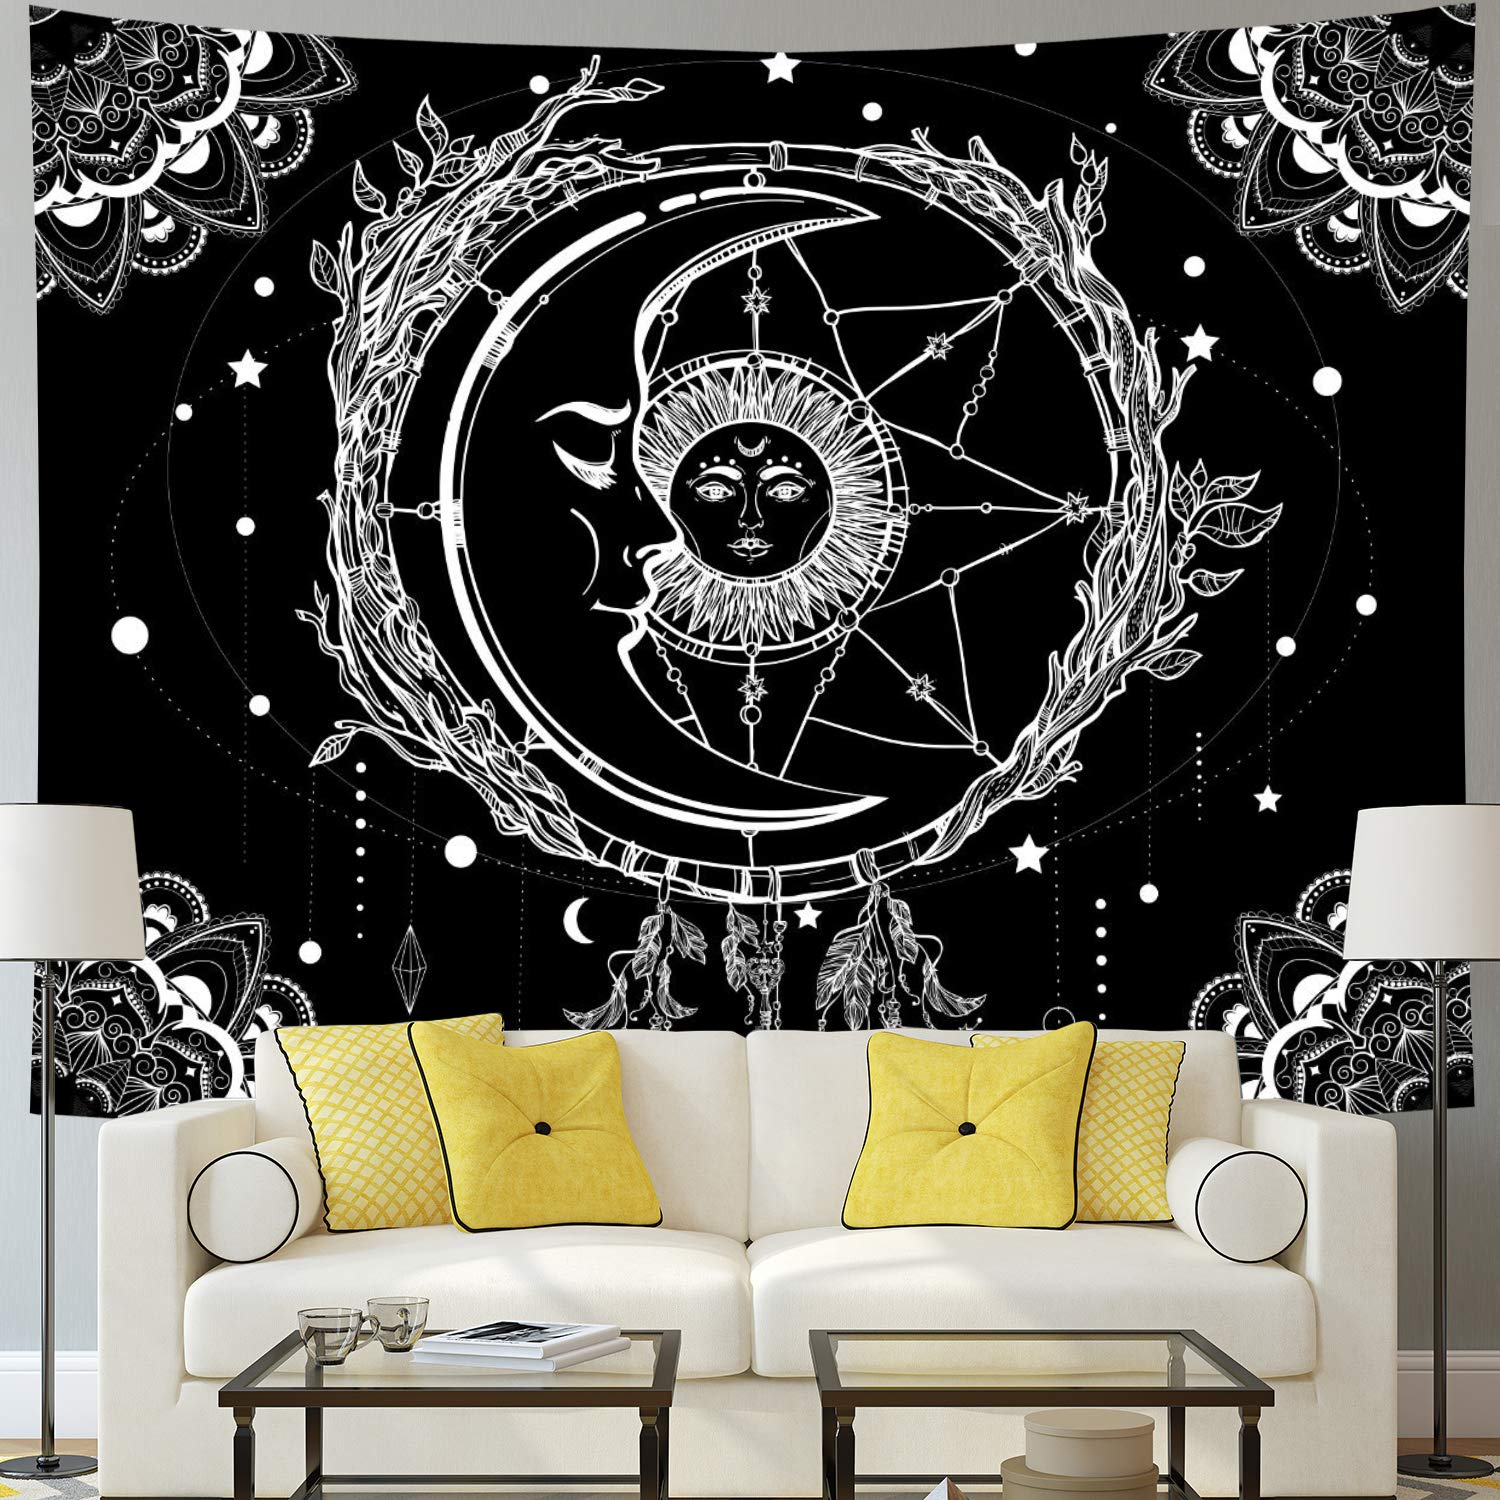 "Moon and Sun Tapestry Psychedelic Bohemian Mandala Wall Tapestry Black and White Indian Hippy Celestial Tapestry Starry Dreamcatcher Tapestry Wall Hanging for Bedroom Living Room Dorm(W59.1"" × H51.2"")"